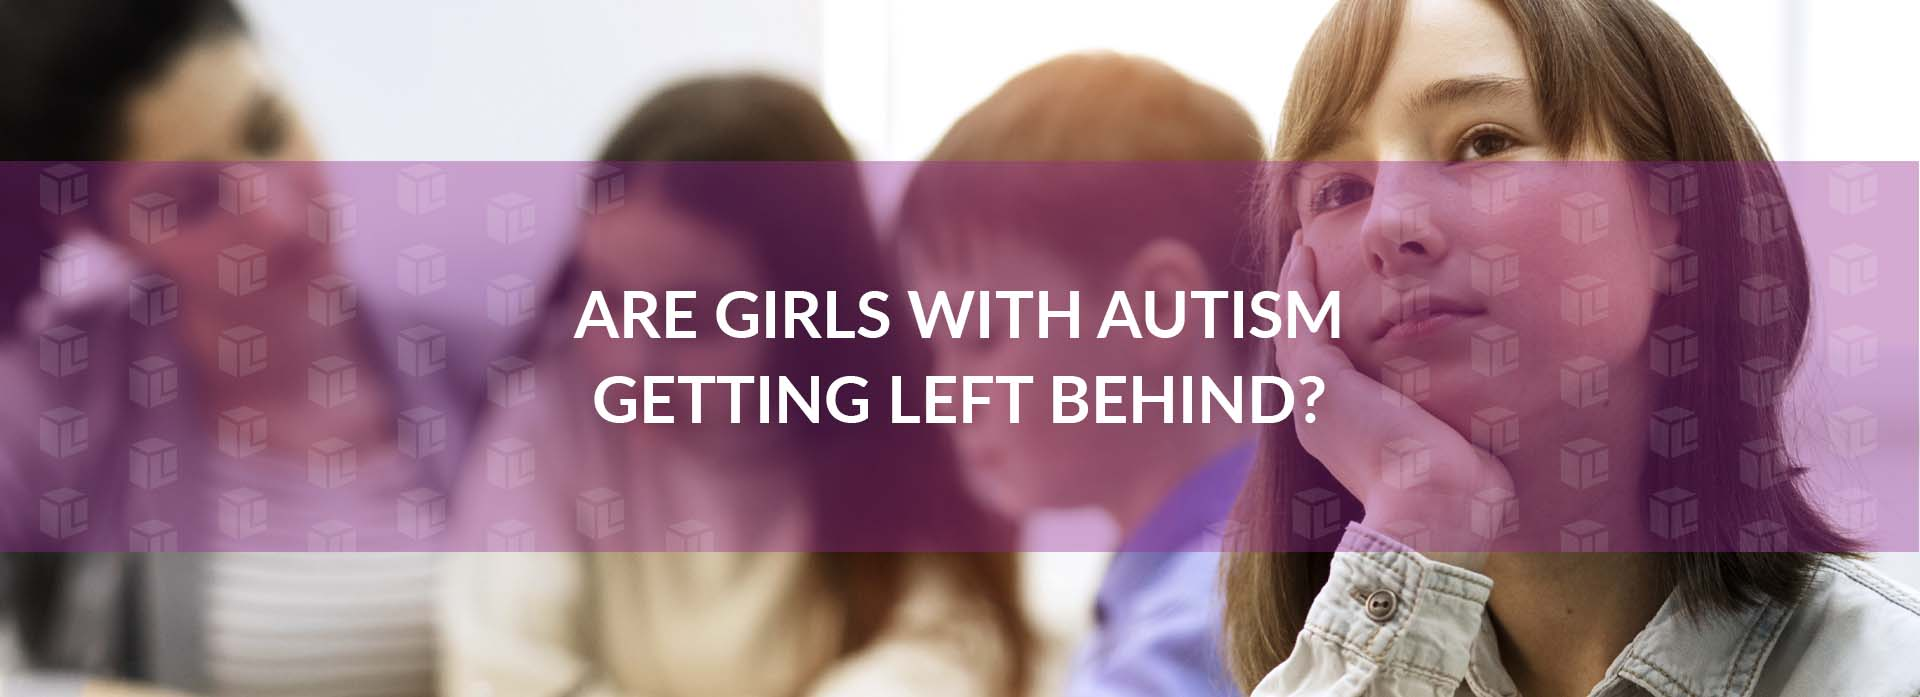 Are Girls With Autism Getting Left Behind?